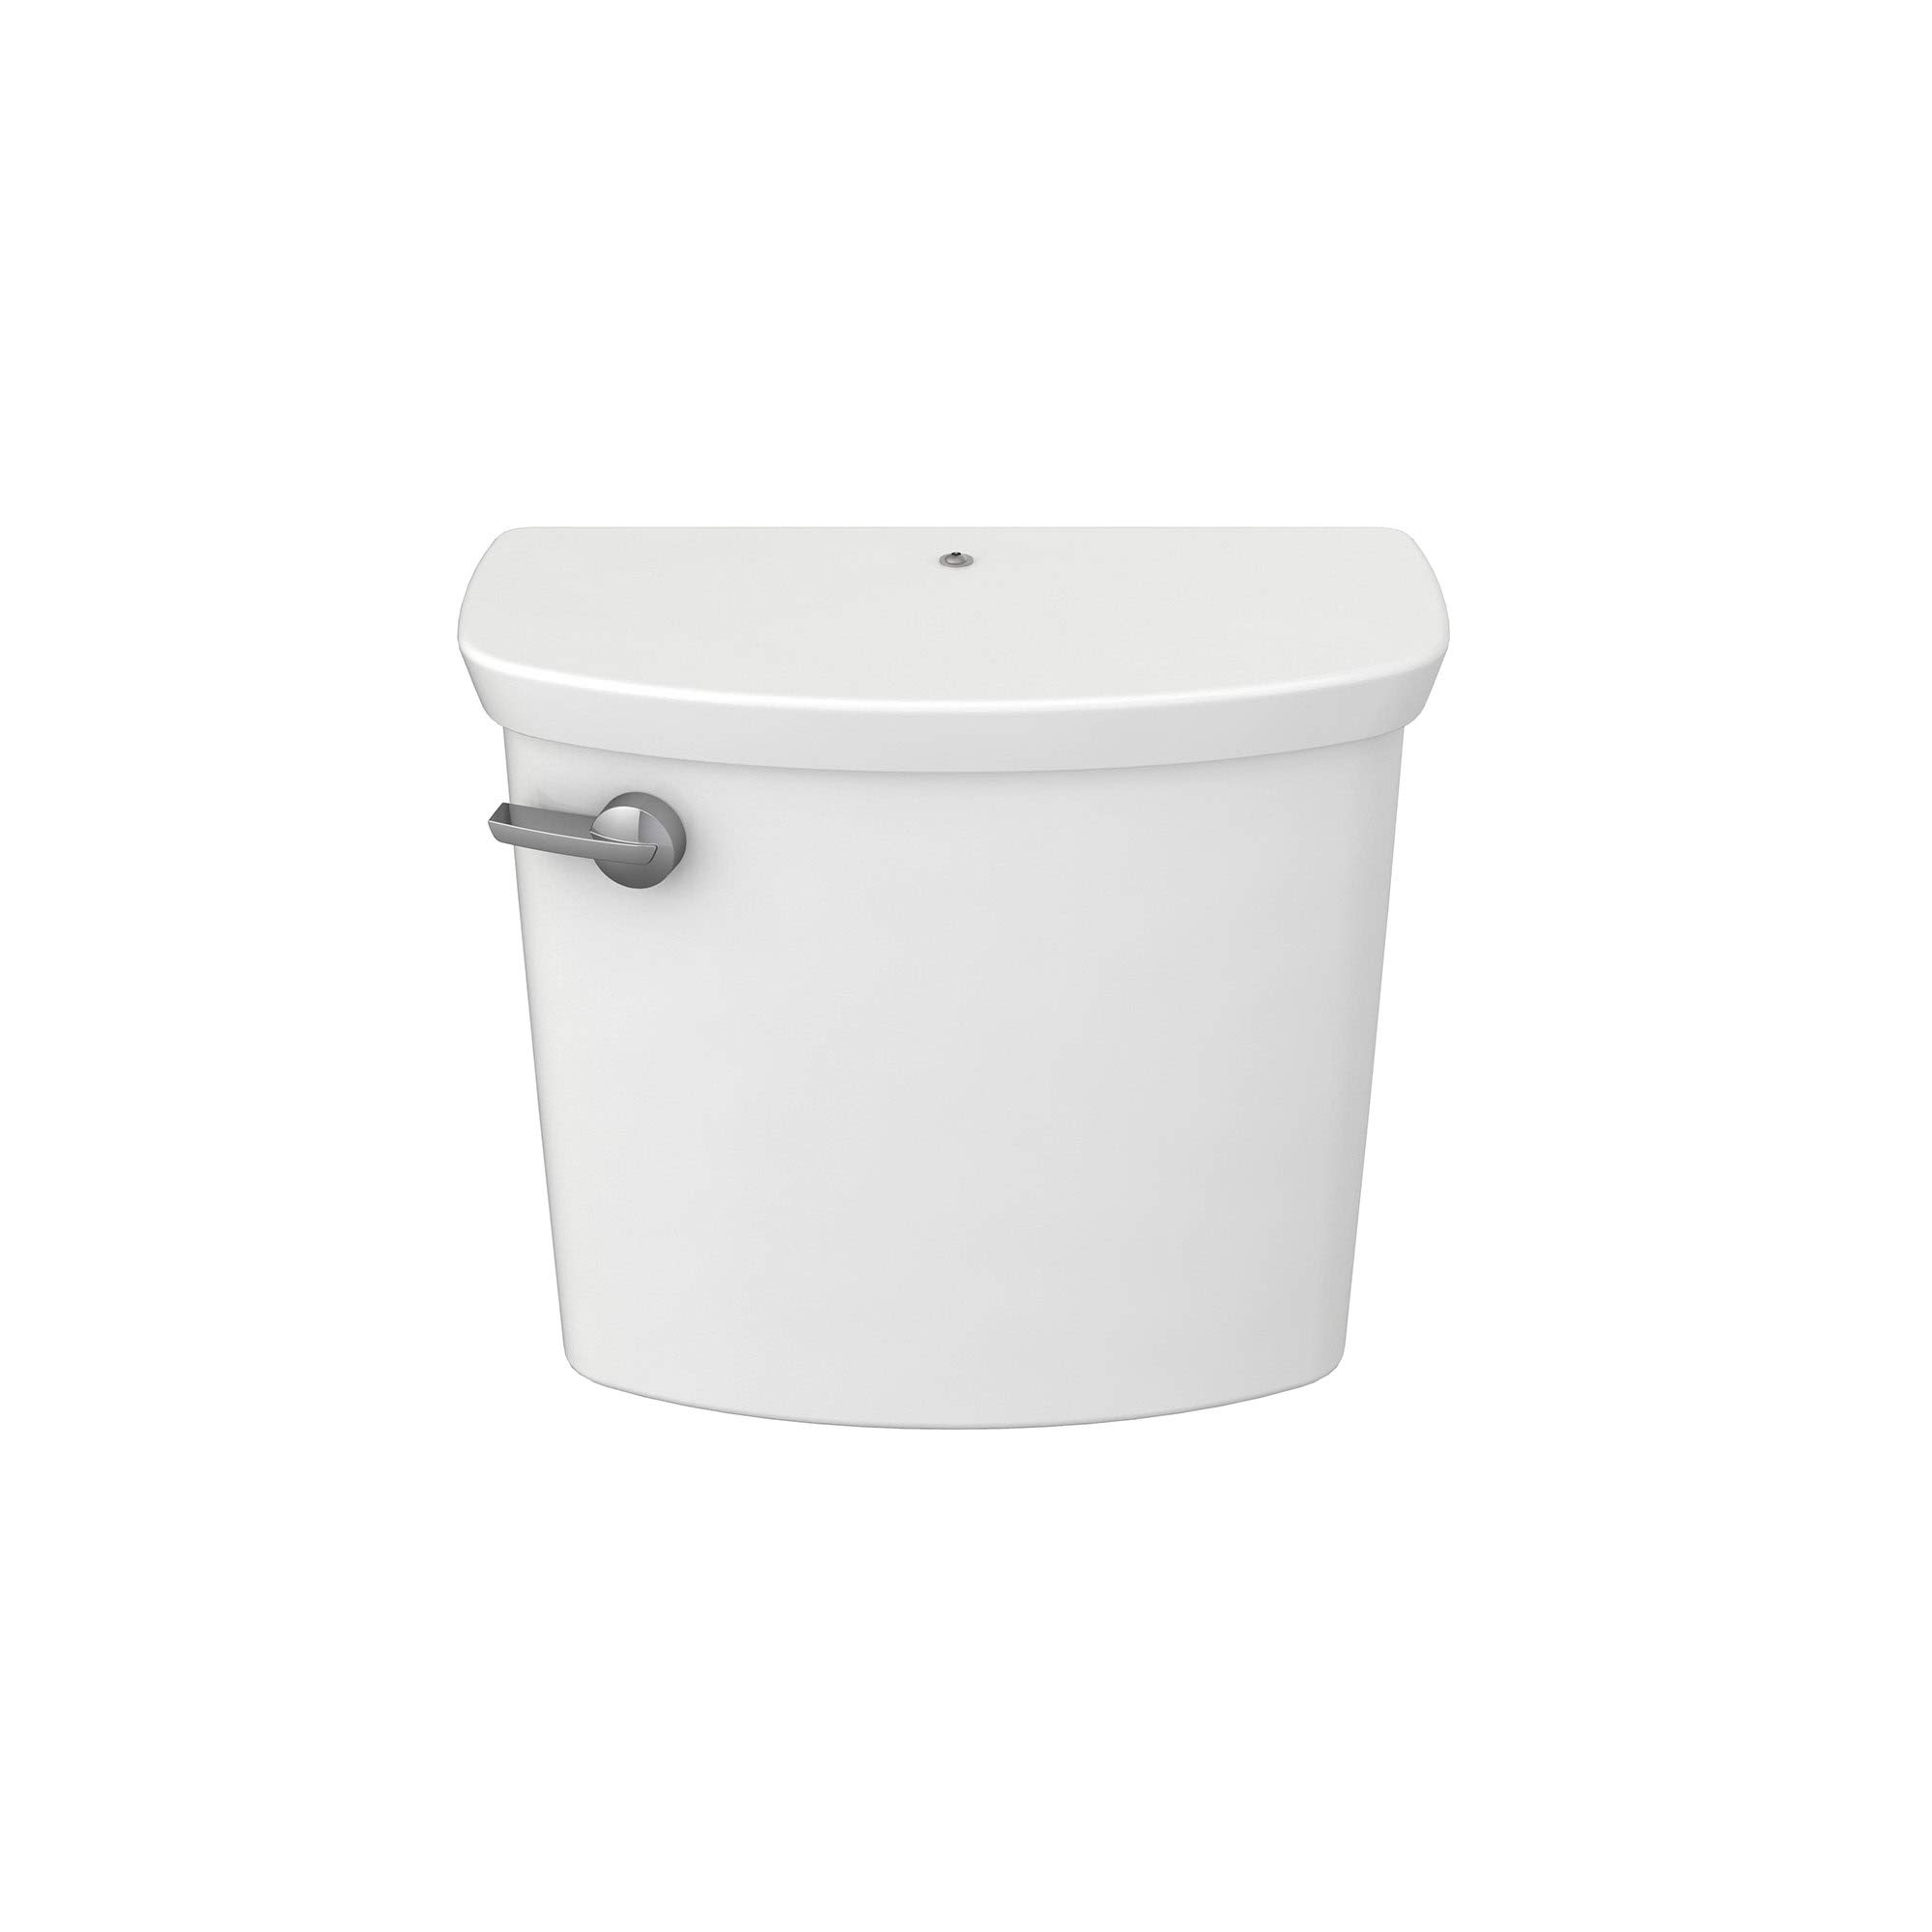 American Standard 4385A167.020 Glenwall VorMax Toilet Left-Hand Trip Lever with Tank Cover Locking Device, White